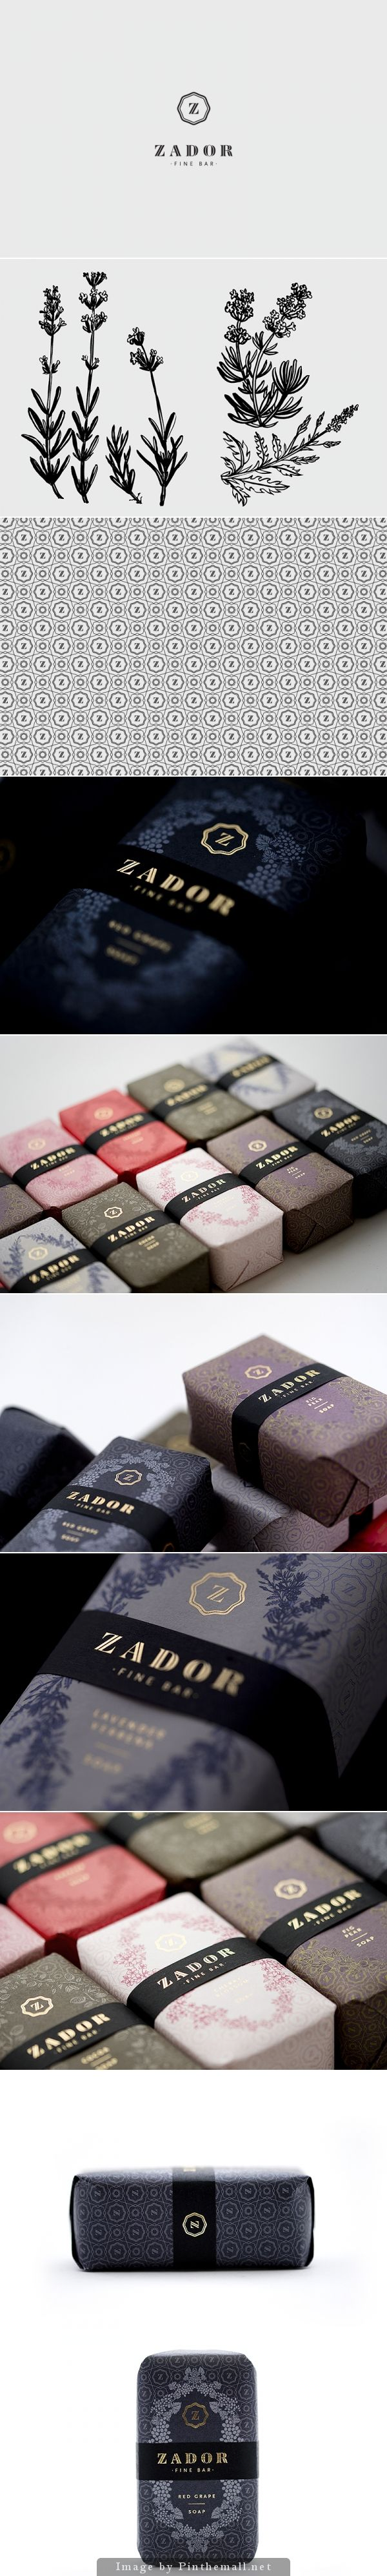 Creative Soap Packaging Design